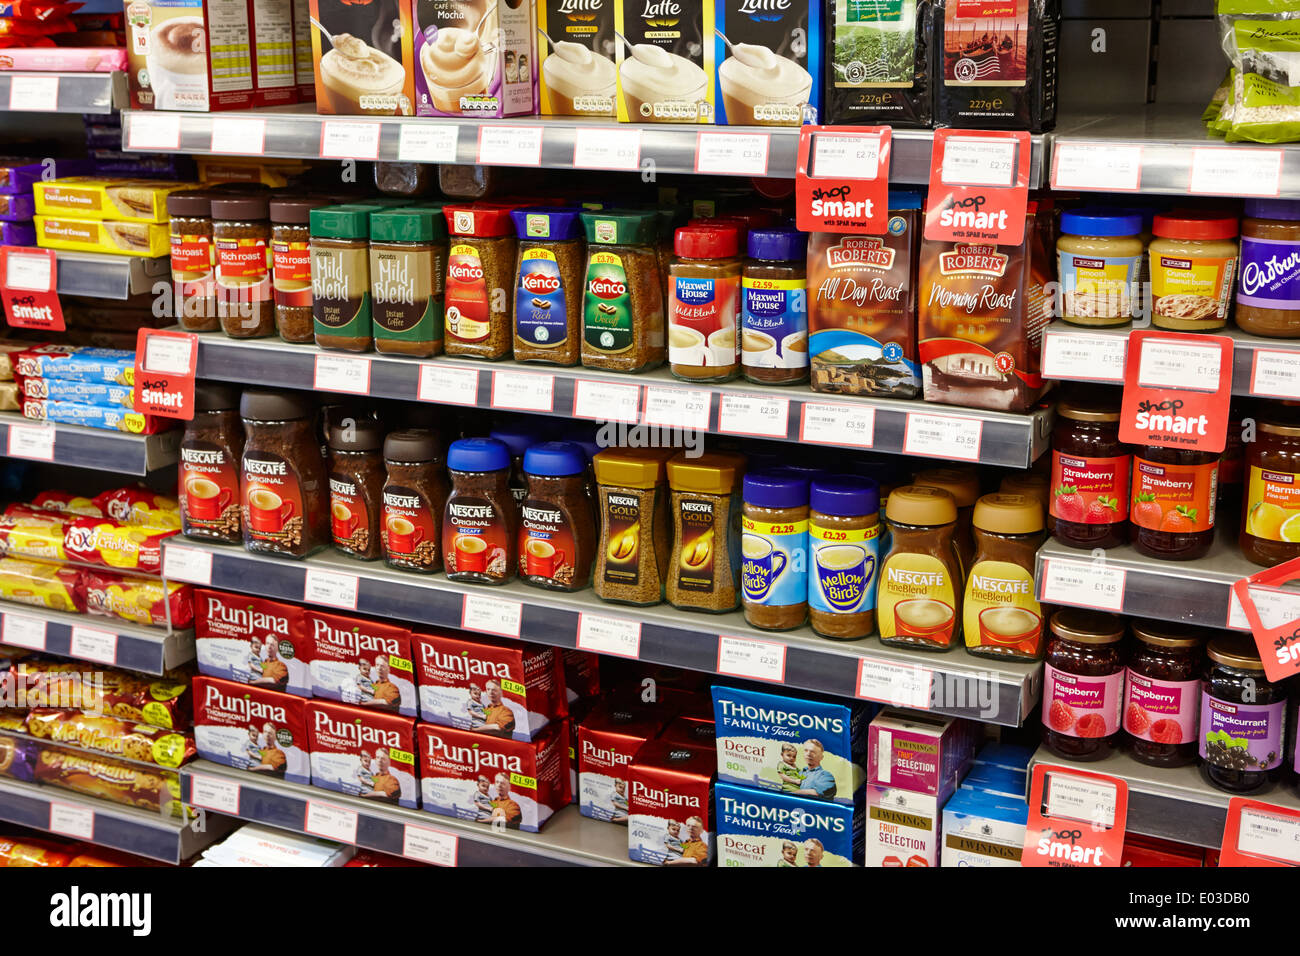 tea and coffee shelf display in a filling station convenience store in northern ireland - Stock Image